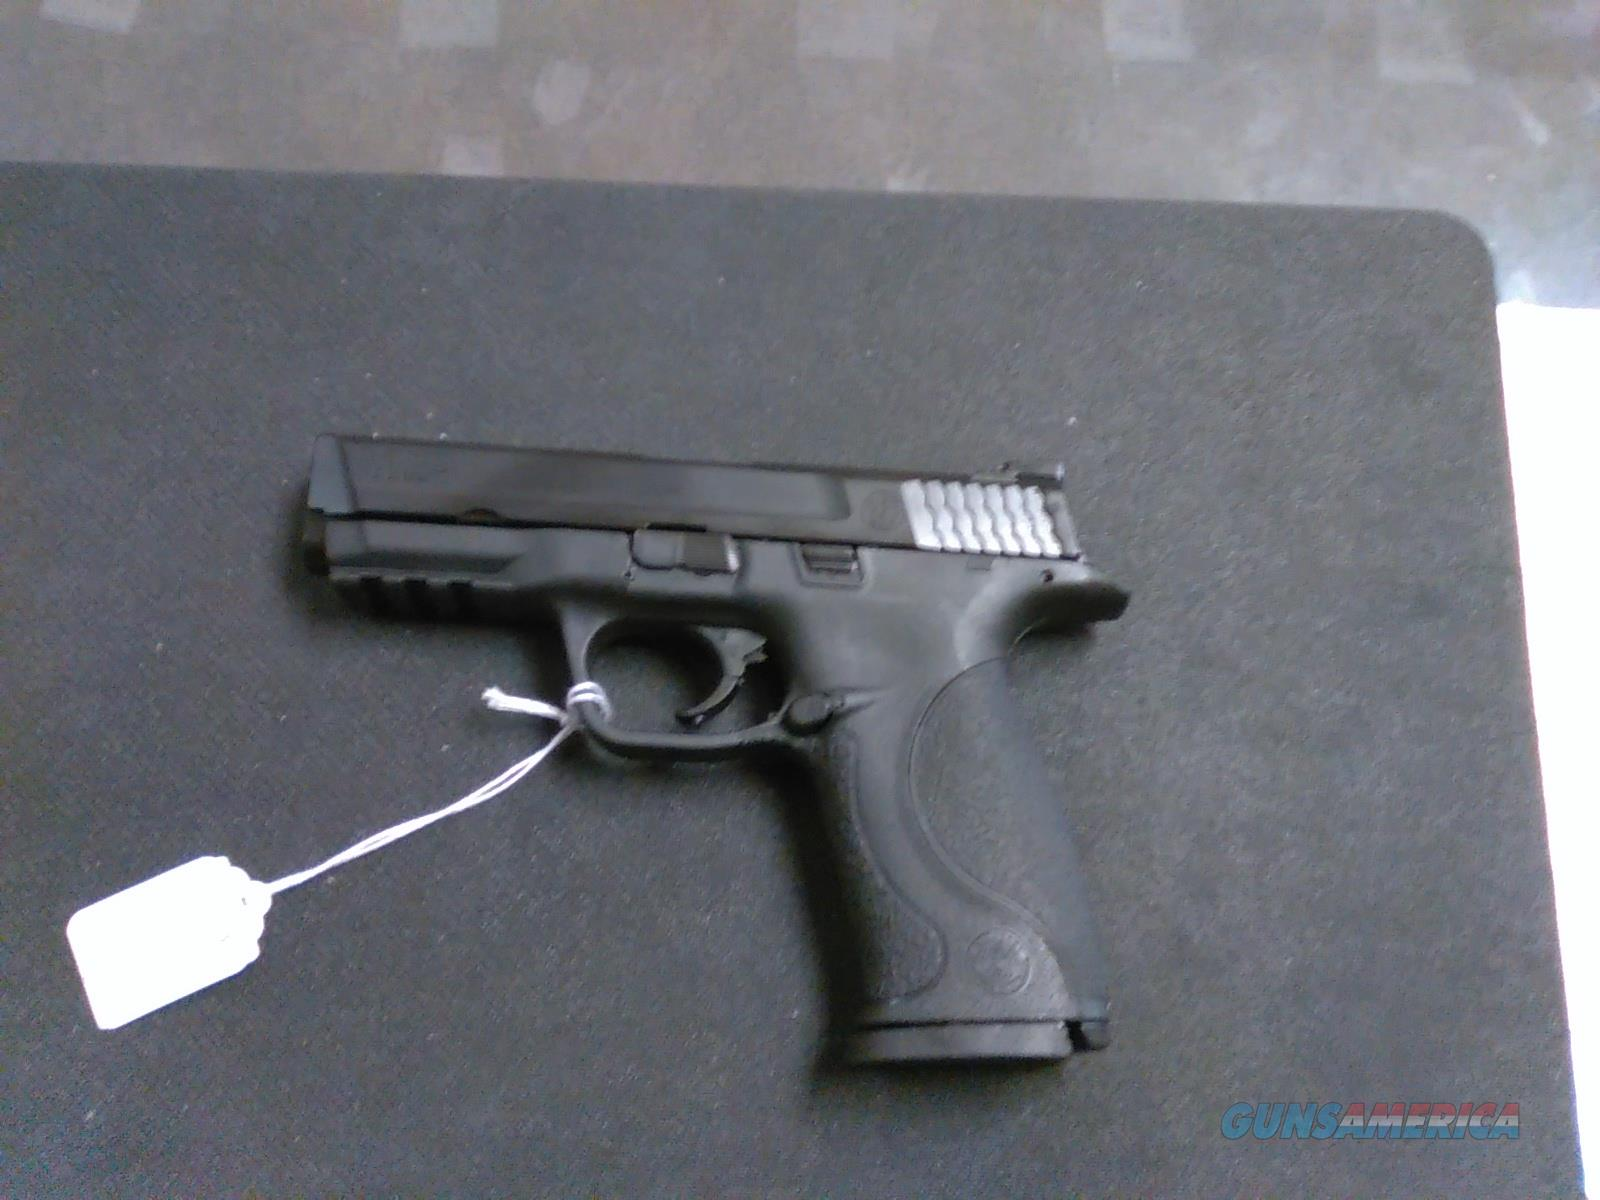 Smith and Wesson M&P 9mm NO CC FEES  Guns > Pistols > Smith & Wesson Pistols - Autos > Polymer Frame